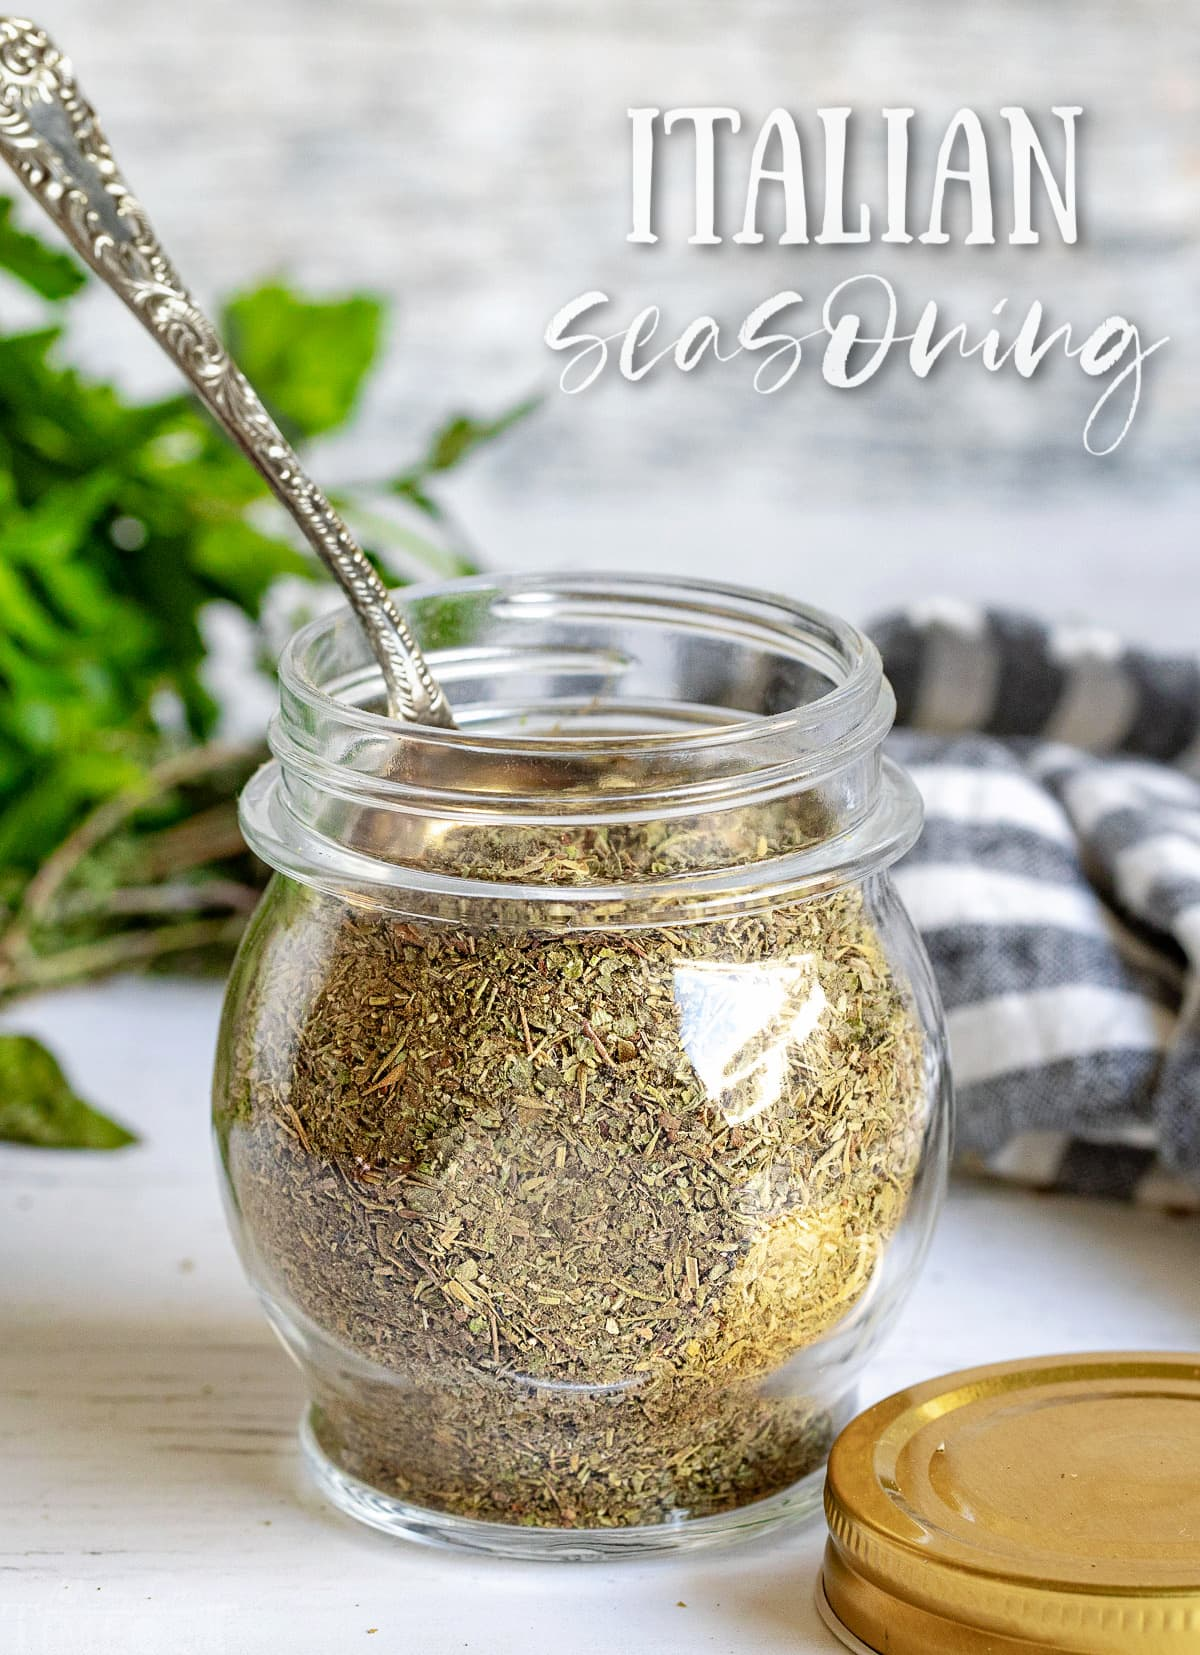 italian seasoning in a small glass jar with a spoon in the jar and title at top of image.